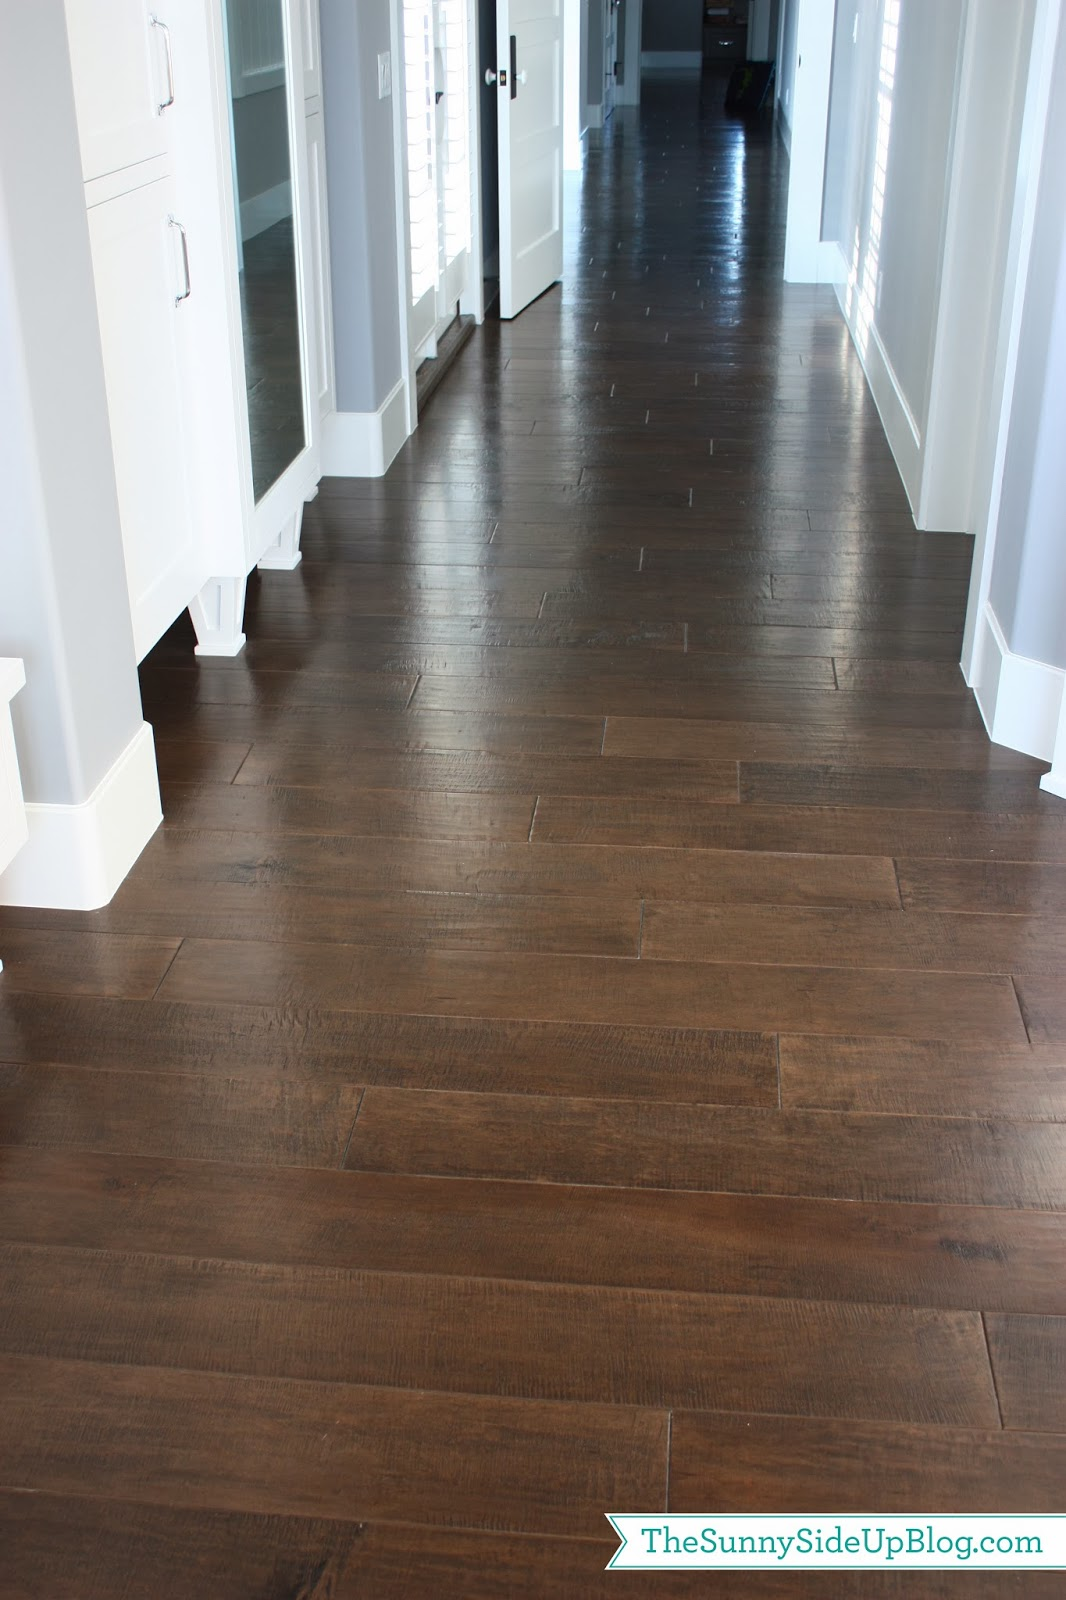 Hardwood flooring the sunny side up blog for Hardwood plank flooring